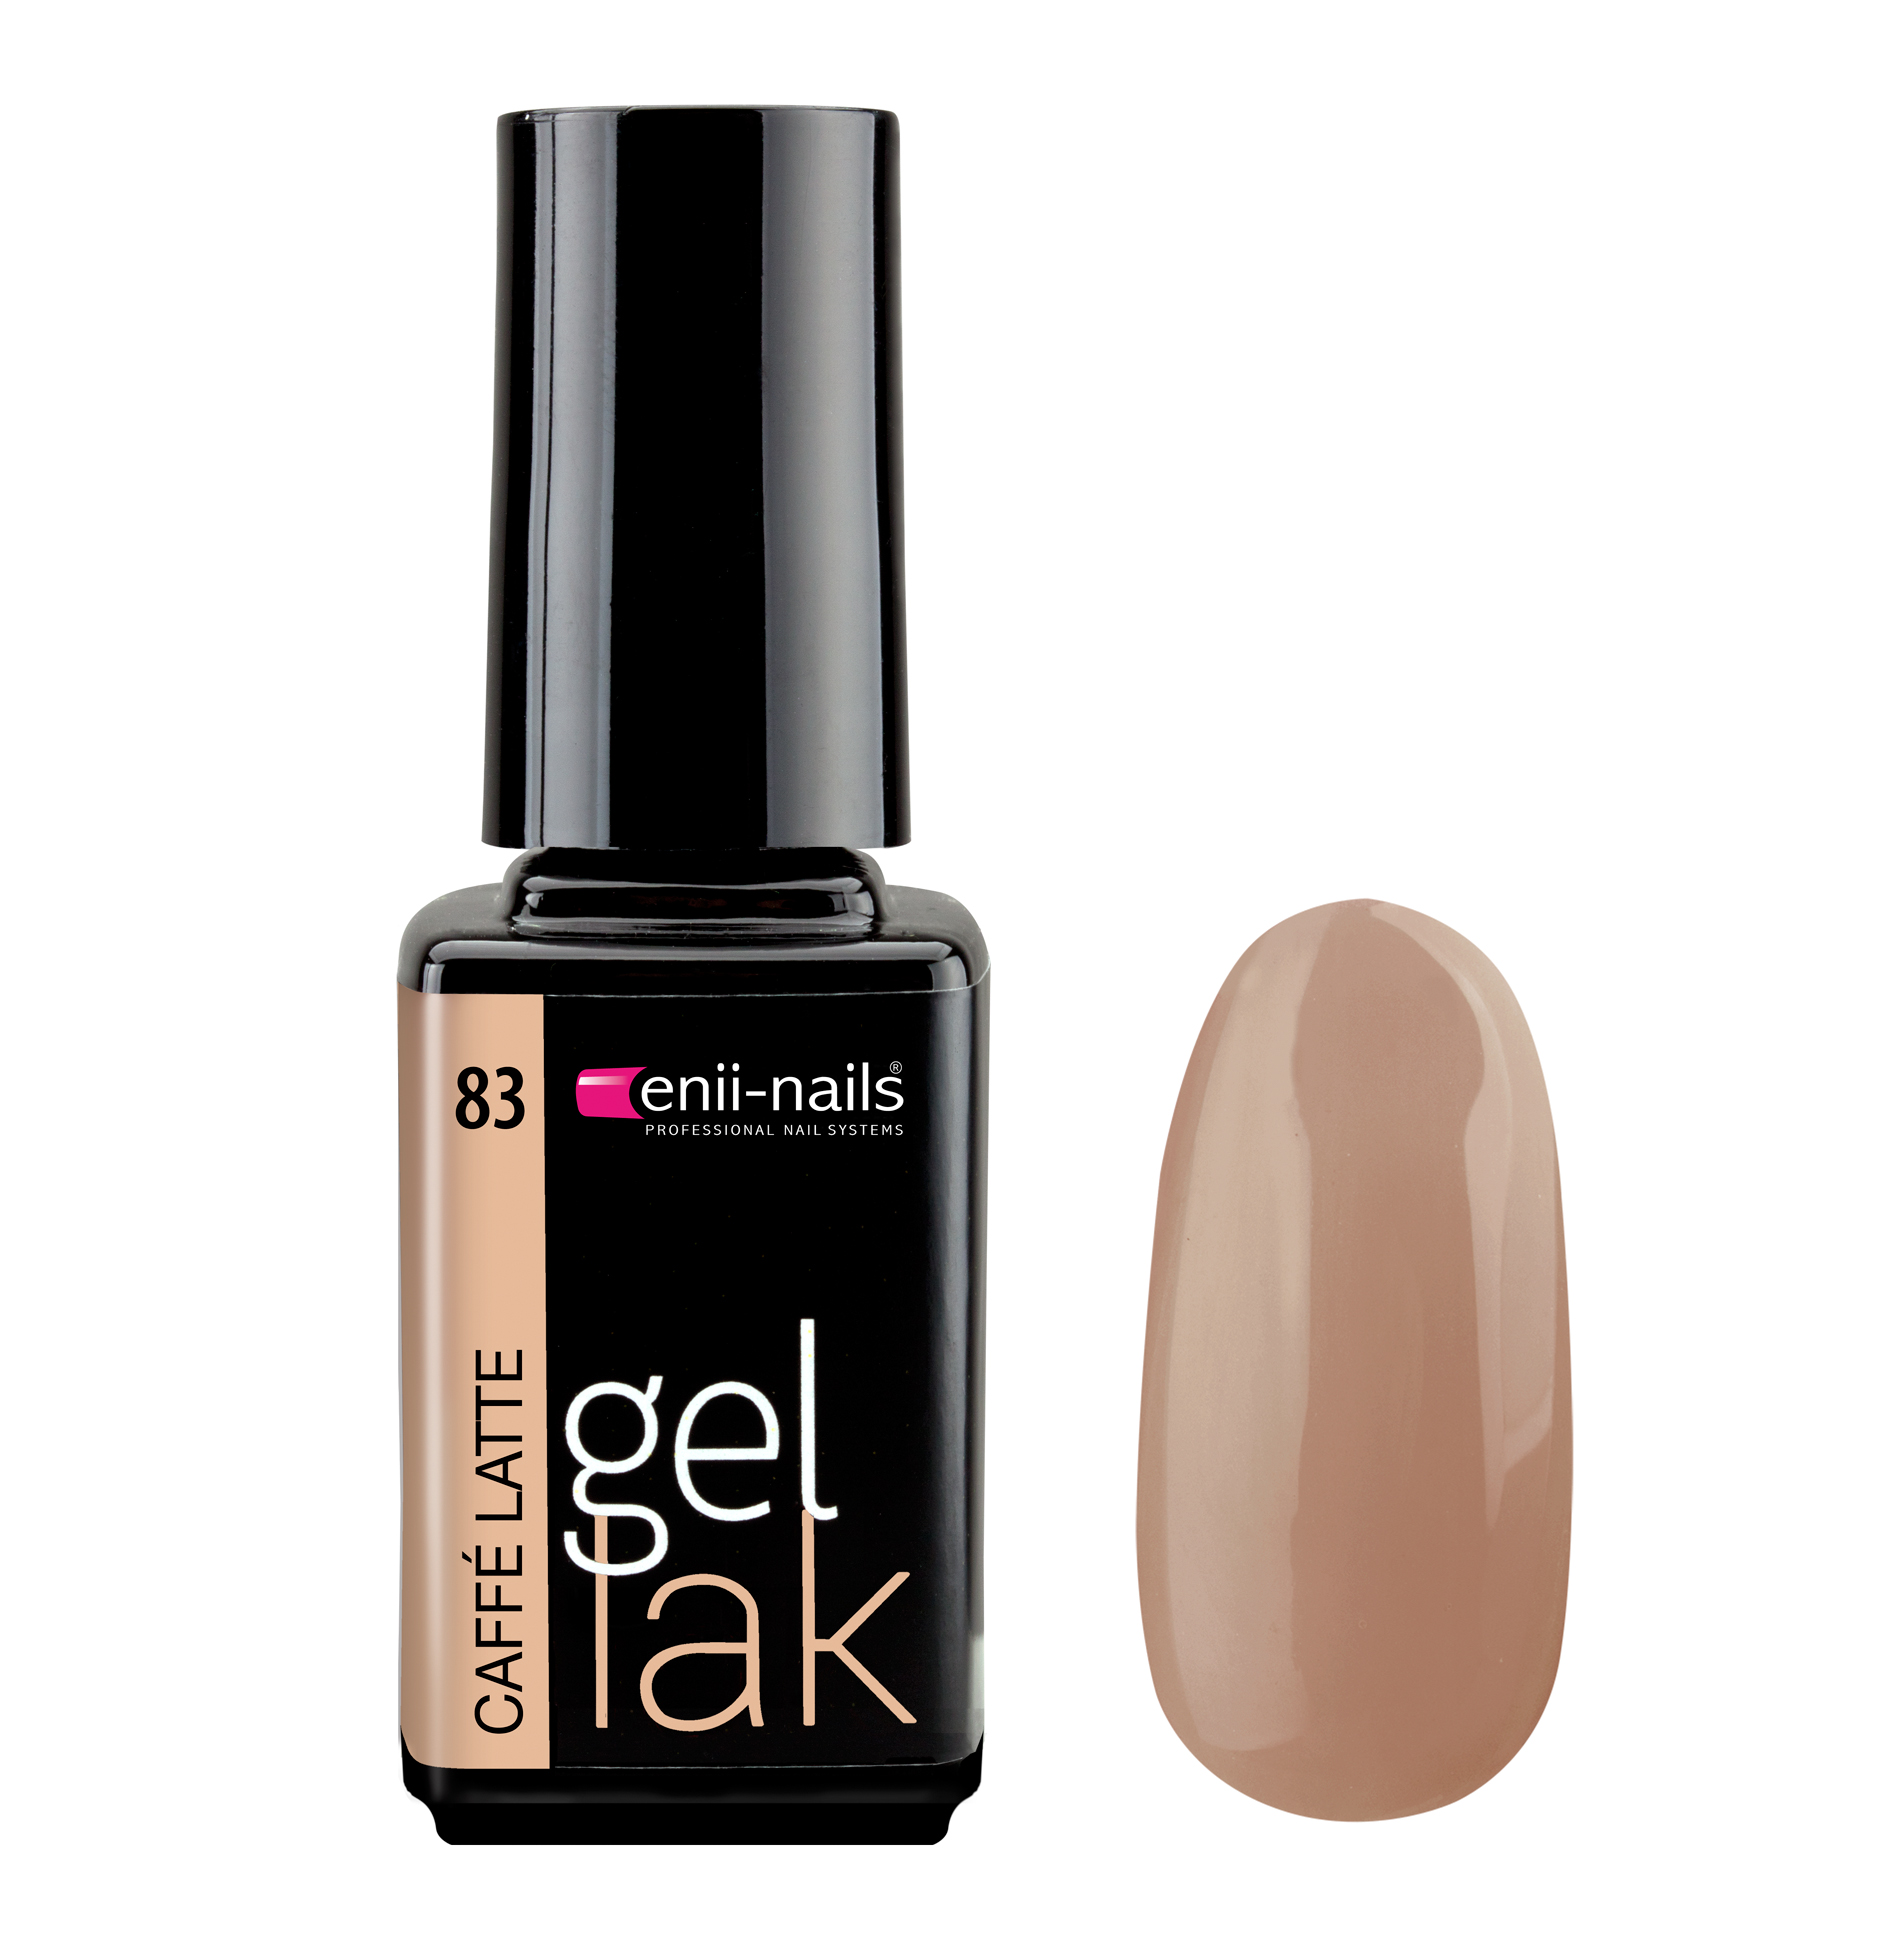 ENII-NAILS Gel lak Caffé Latte 5 ml